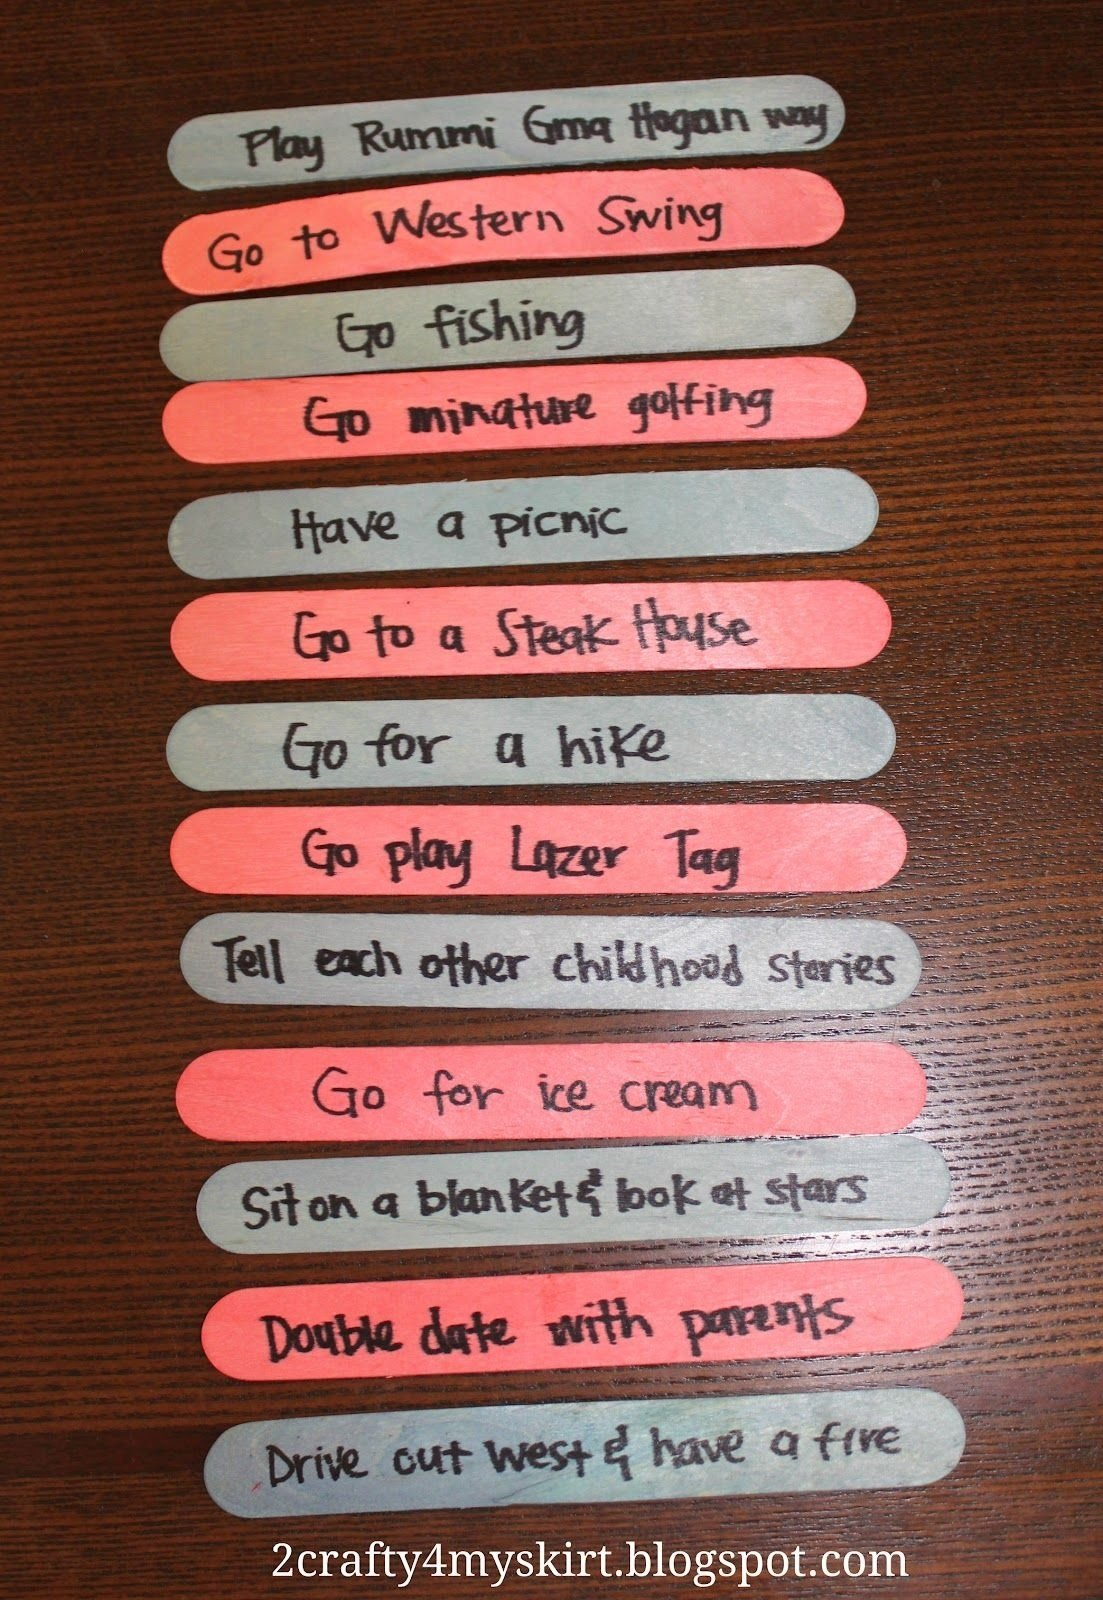 10 Ideal Ideas For Date Night With Wife 2 crafty 4 my skirt date night jar sticks colored based on price 2020